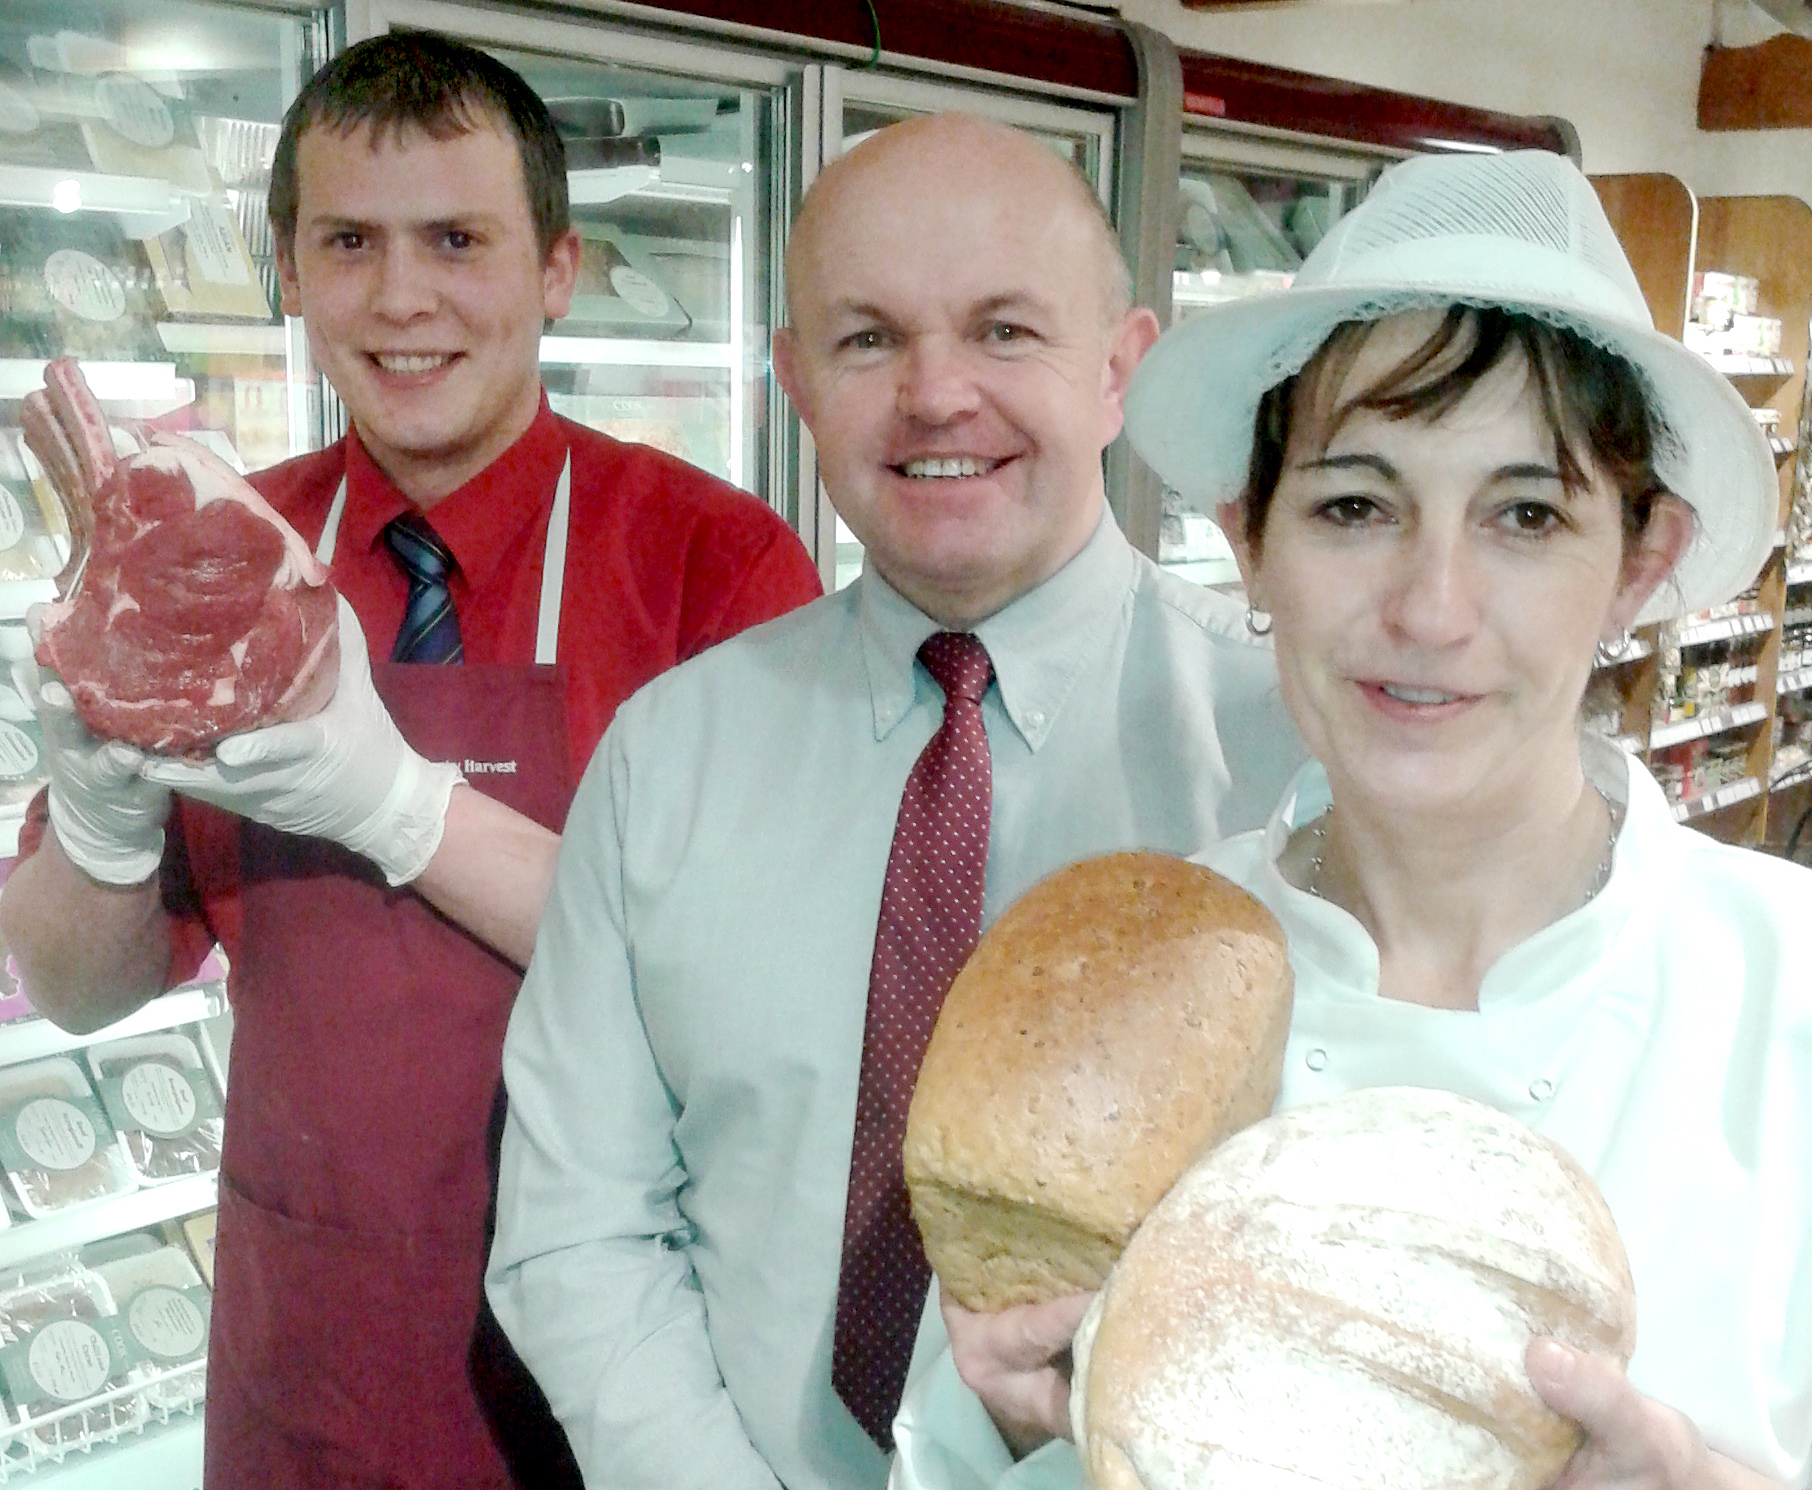 Butcher George Taylor, managing director Mike Clark and bakery manager Angela Danskin